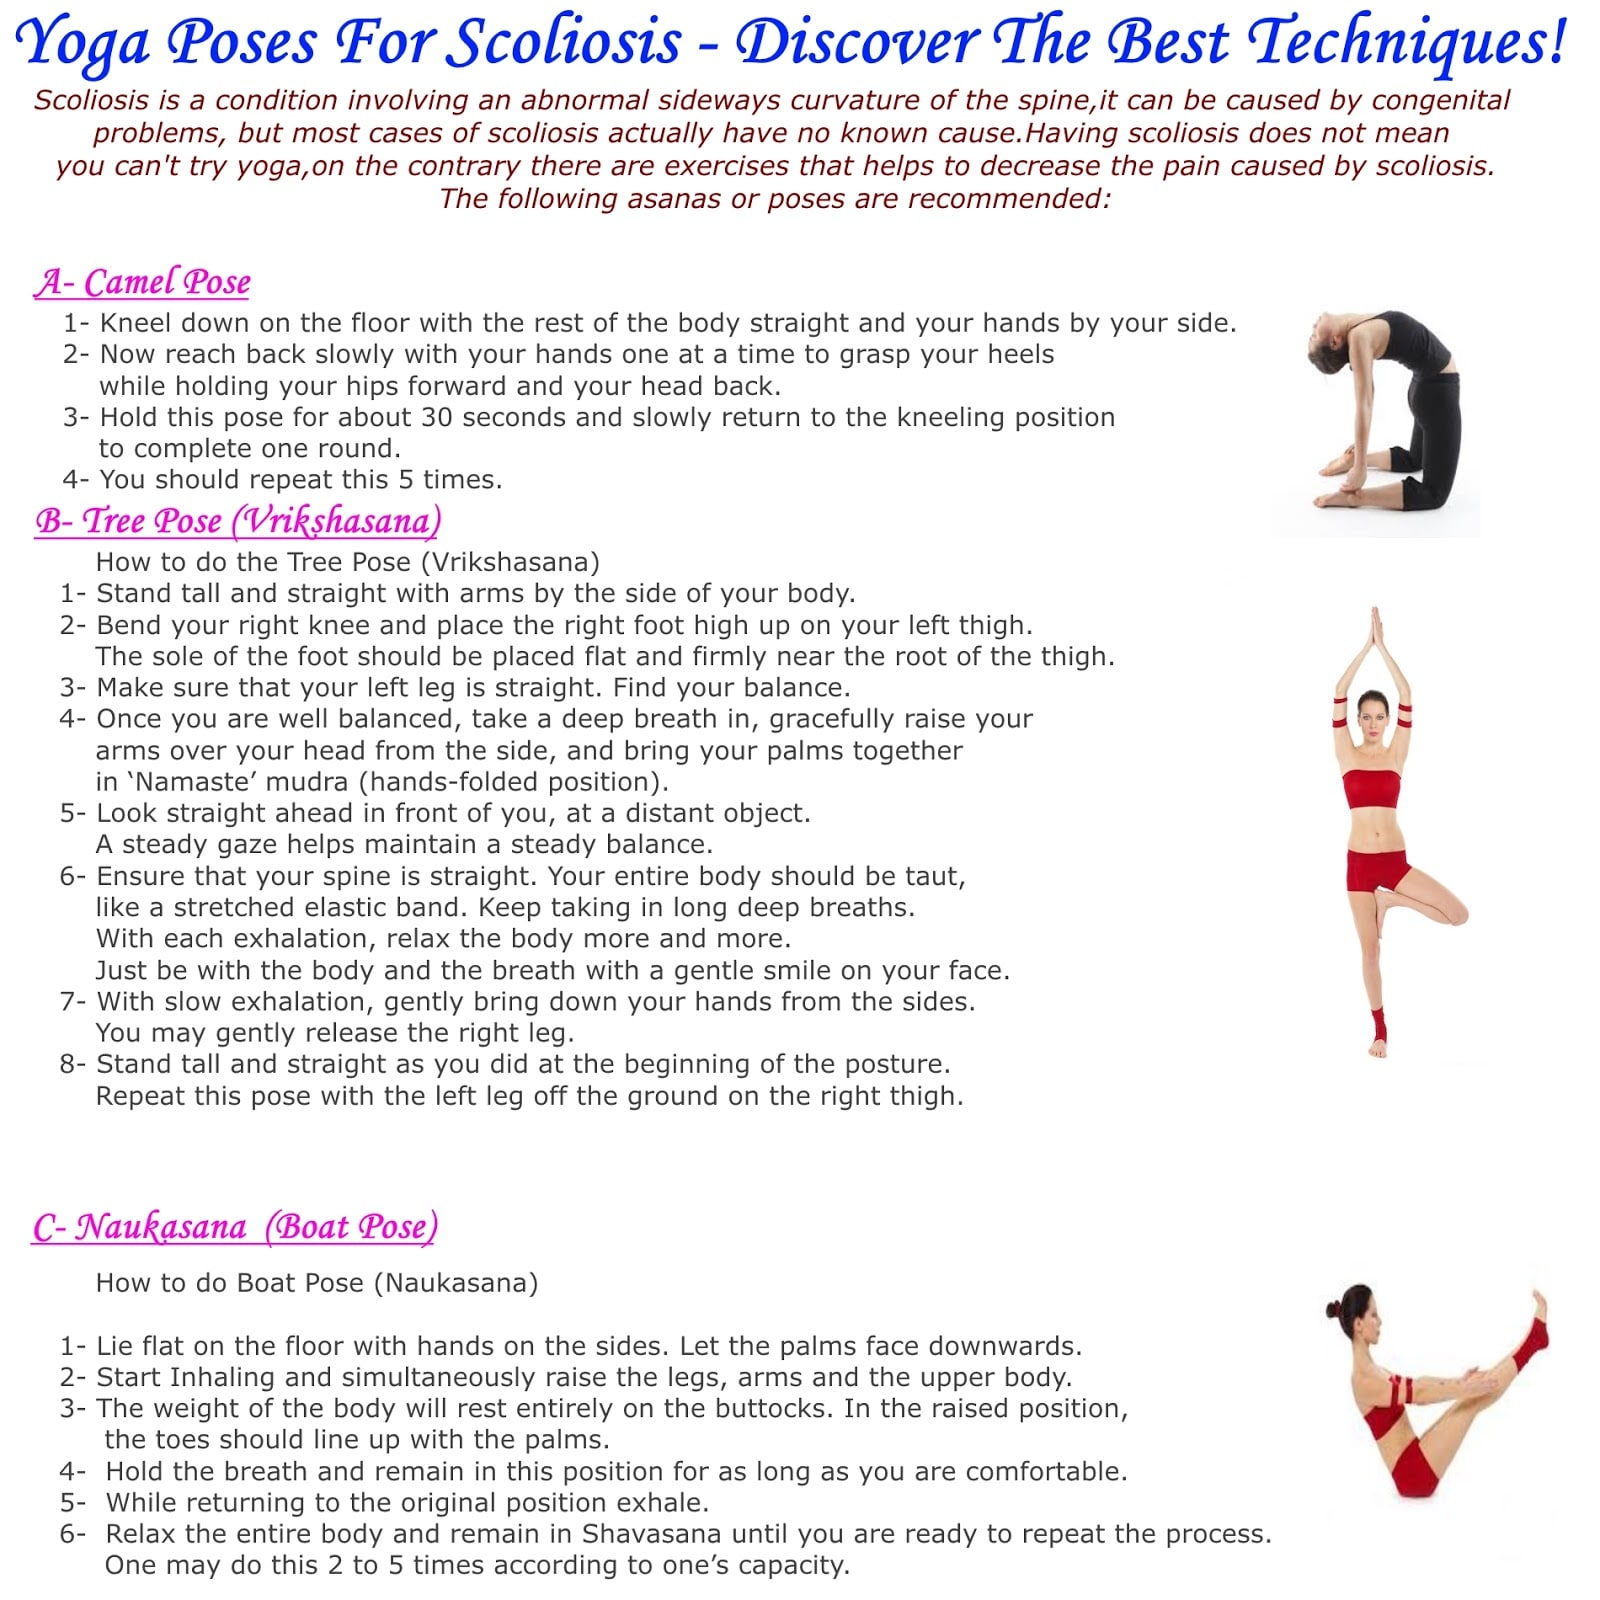 Yoga Poses For Scoliosis